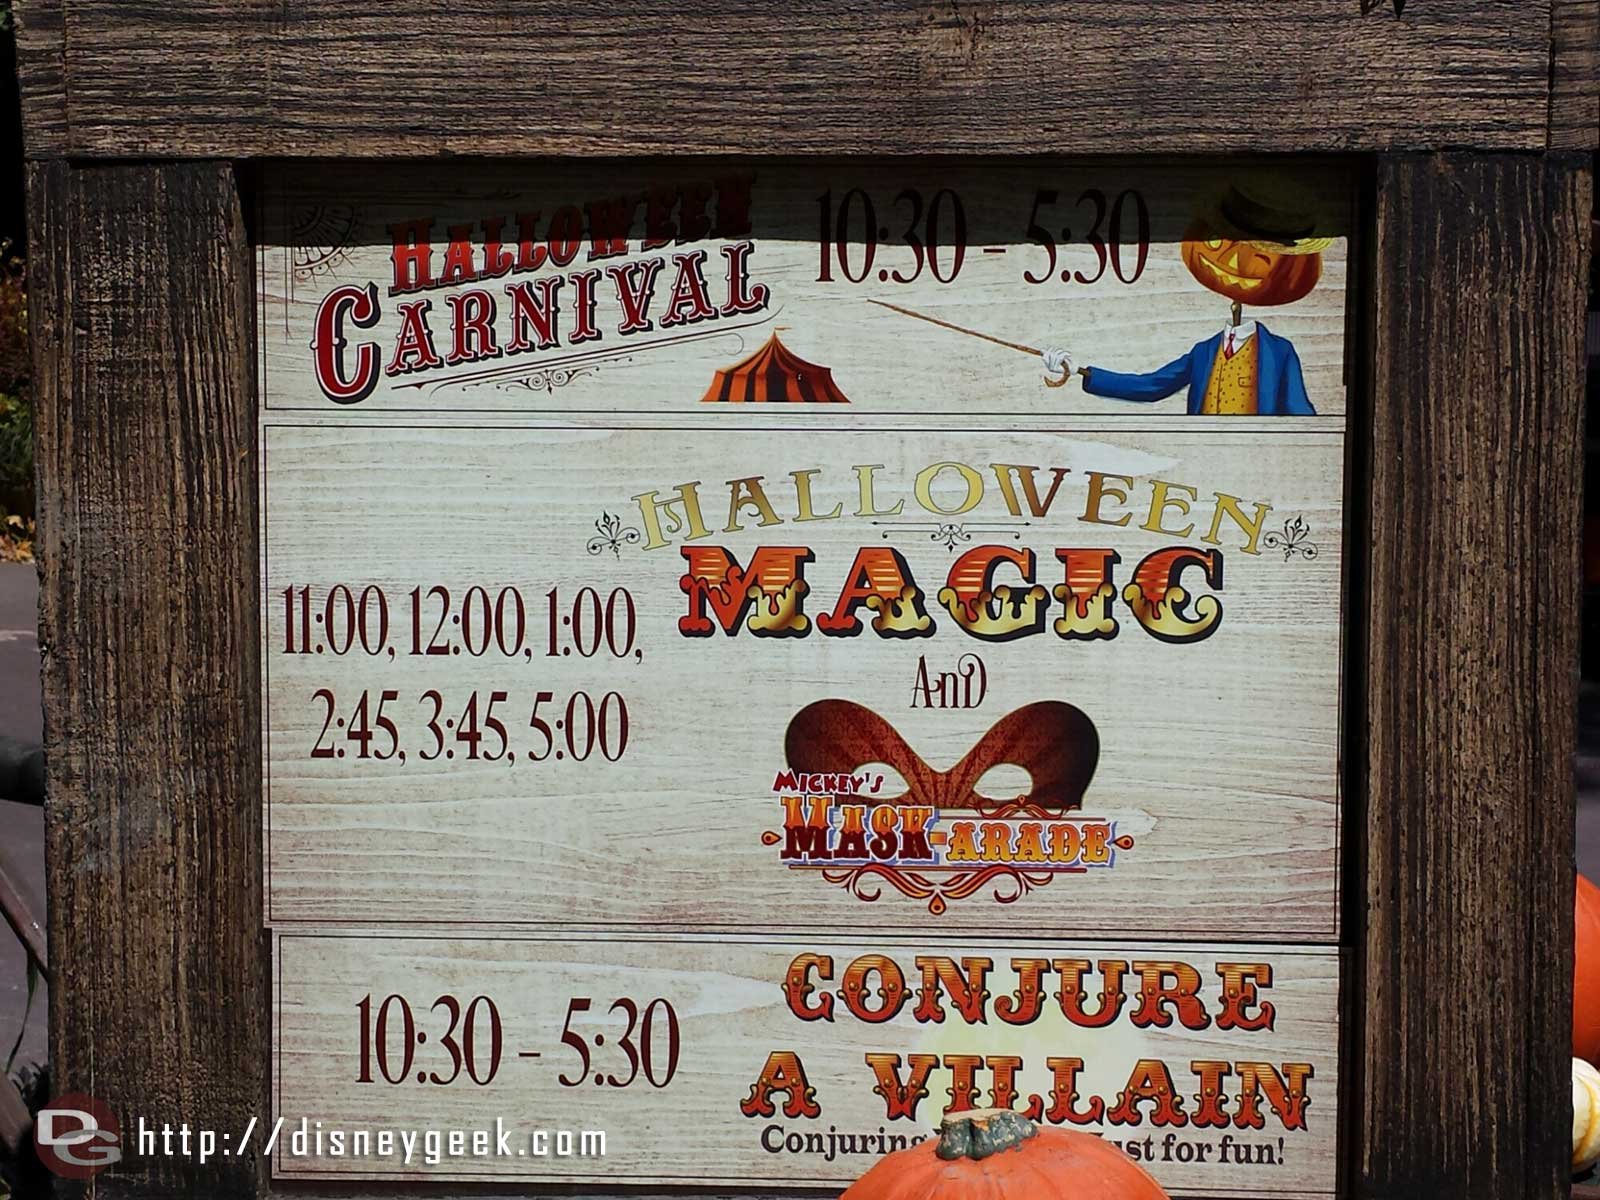 The Halloween Carnival has returned to the Big Thunder Ranch Jamboree here is the schedule of events #Disneyland